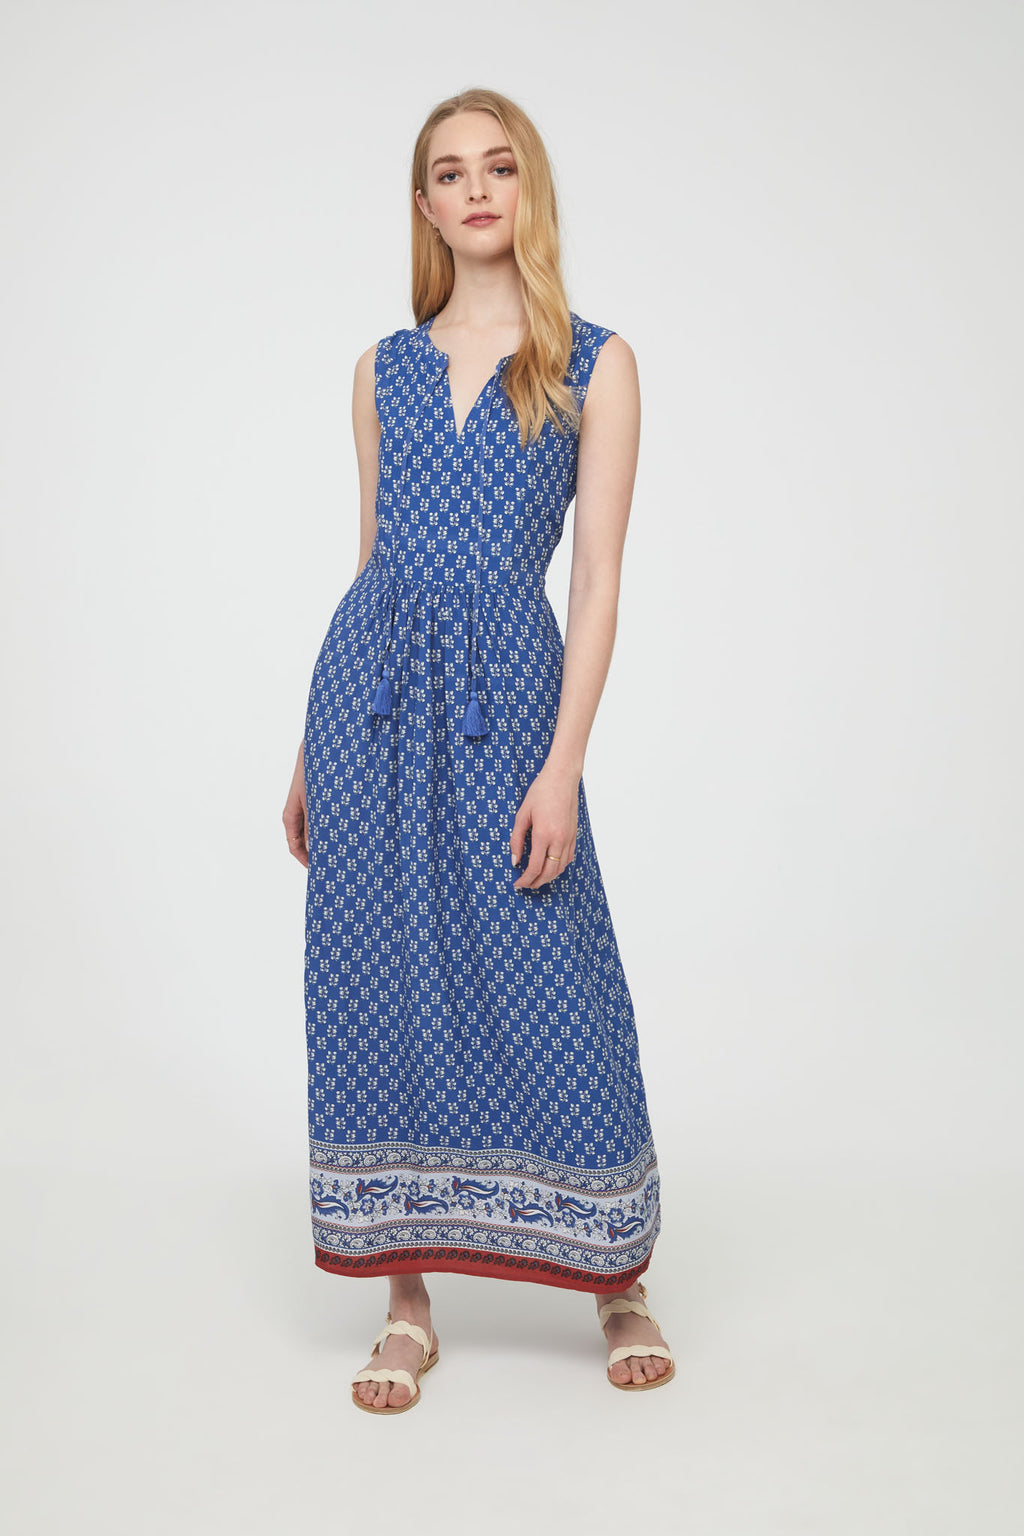 KAMARIN DRESS - ATHENS BLUE